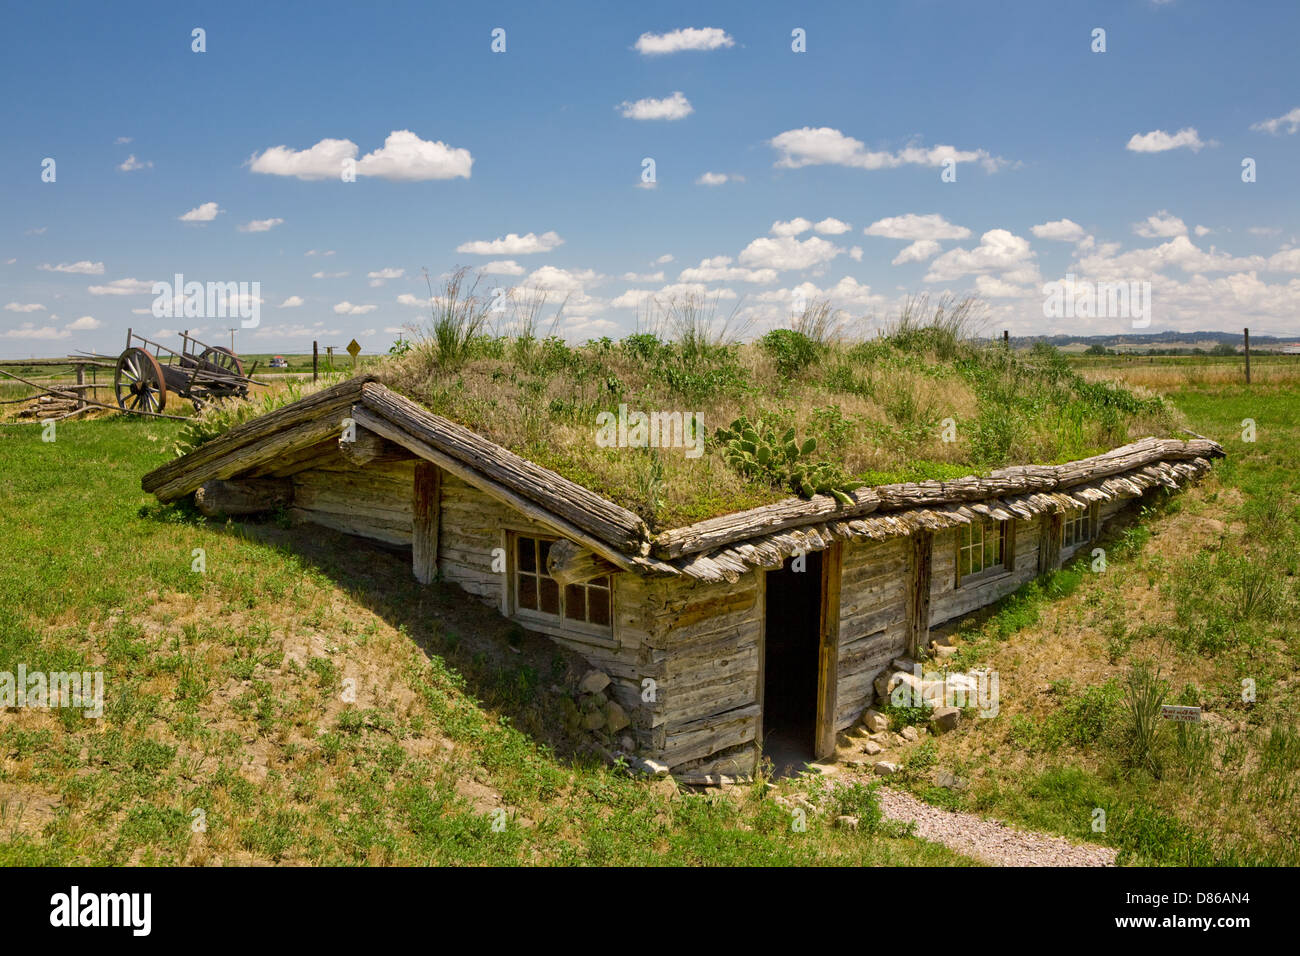 All White Kitchens Sod House Stock Photos Amp Sod House Stock Images Alamy